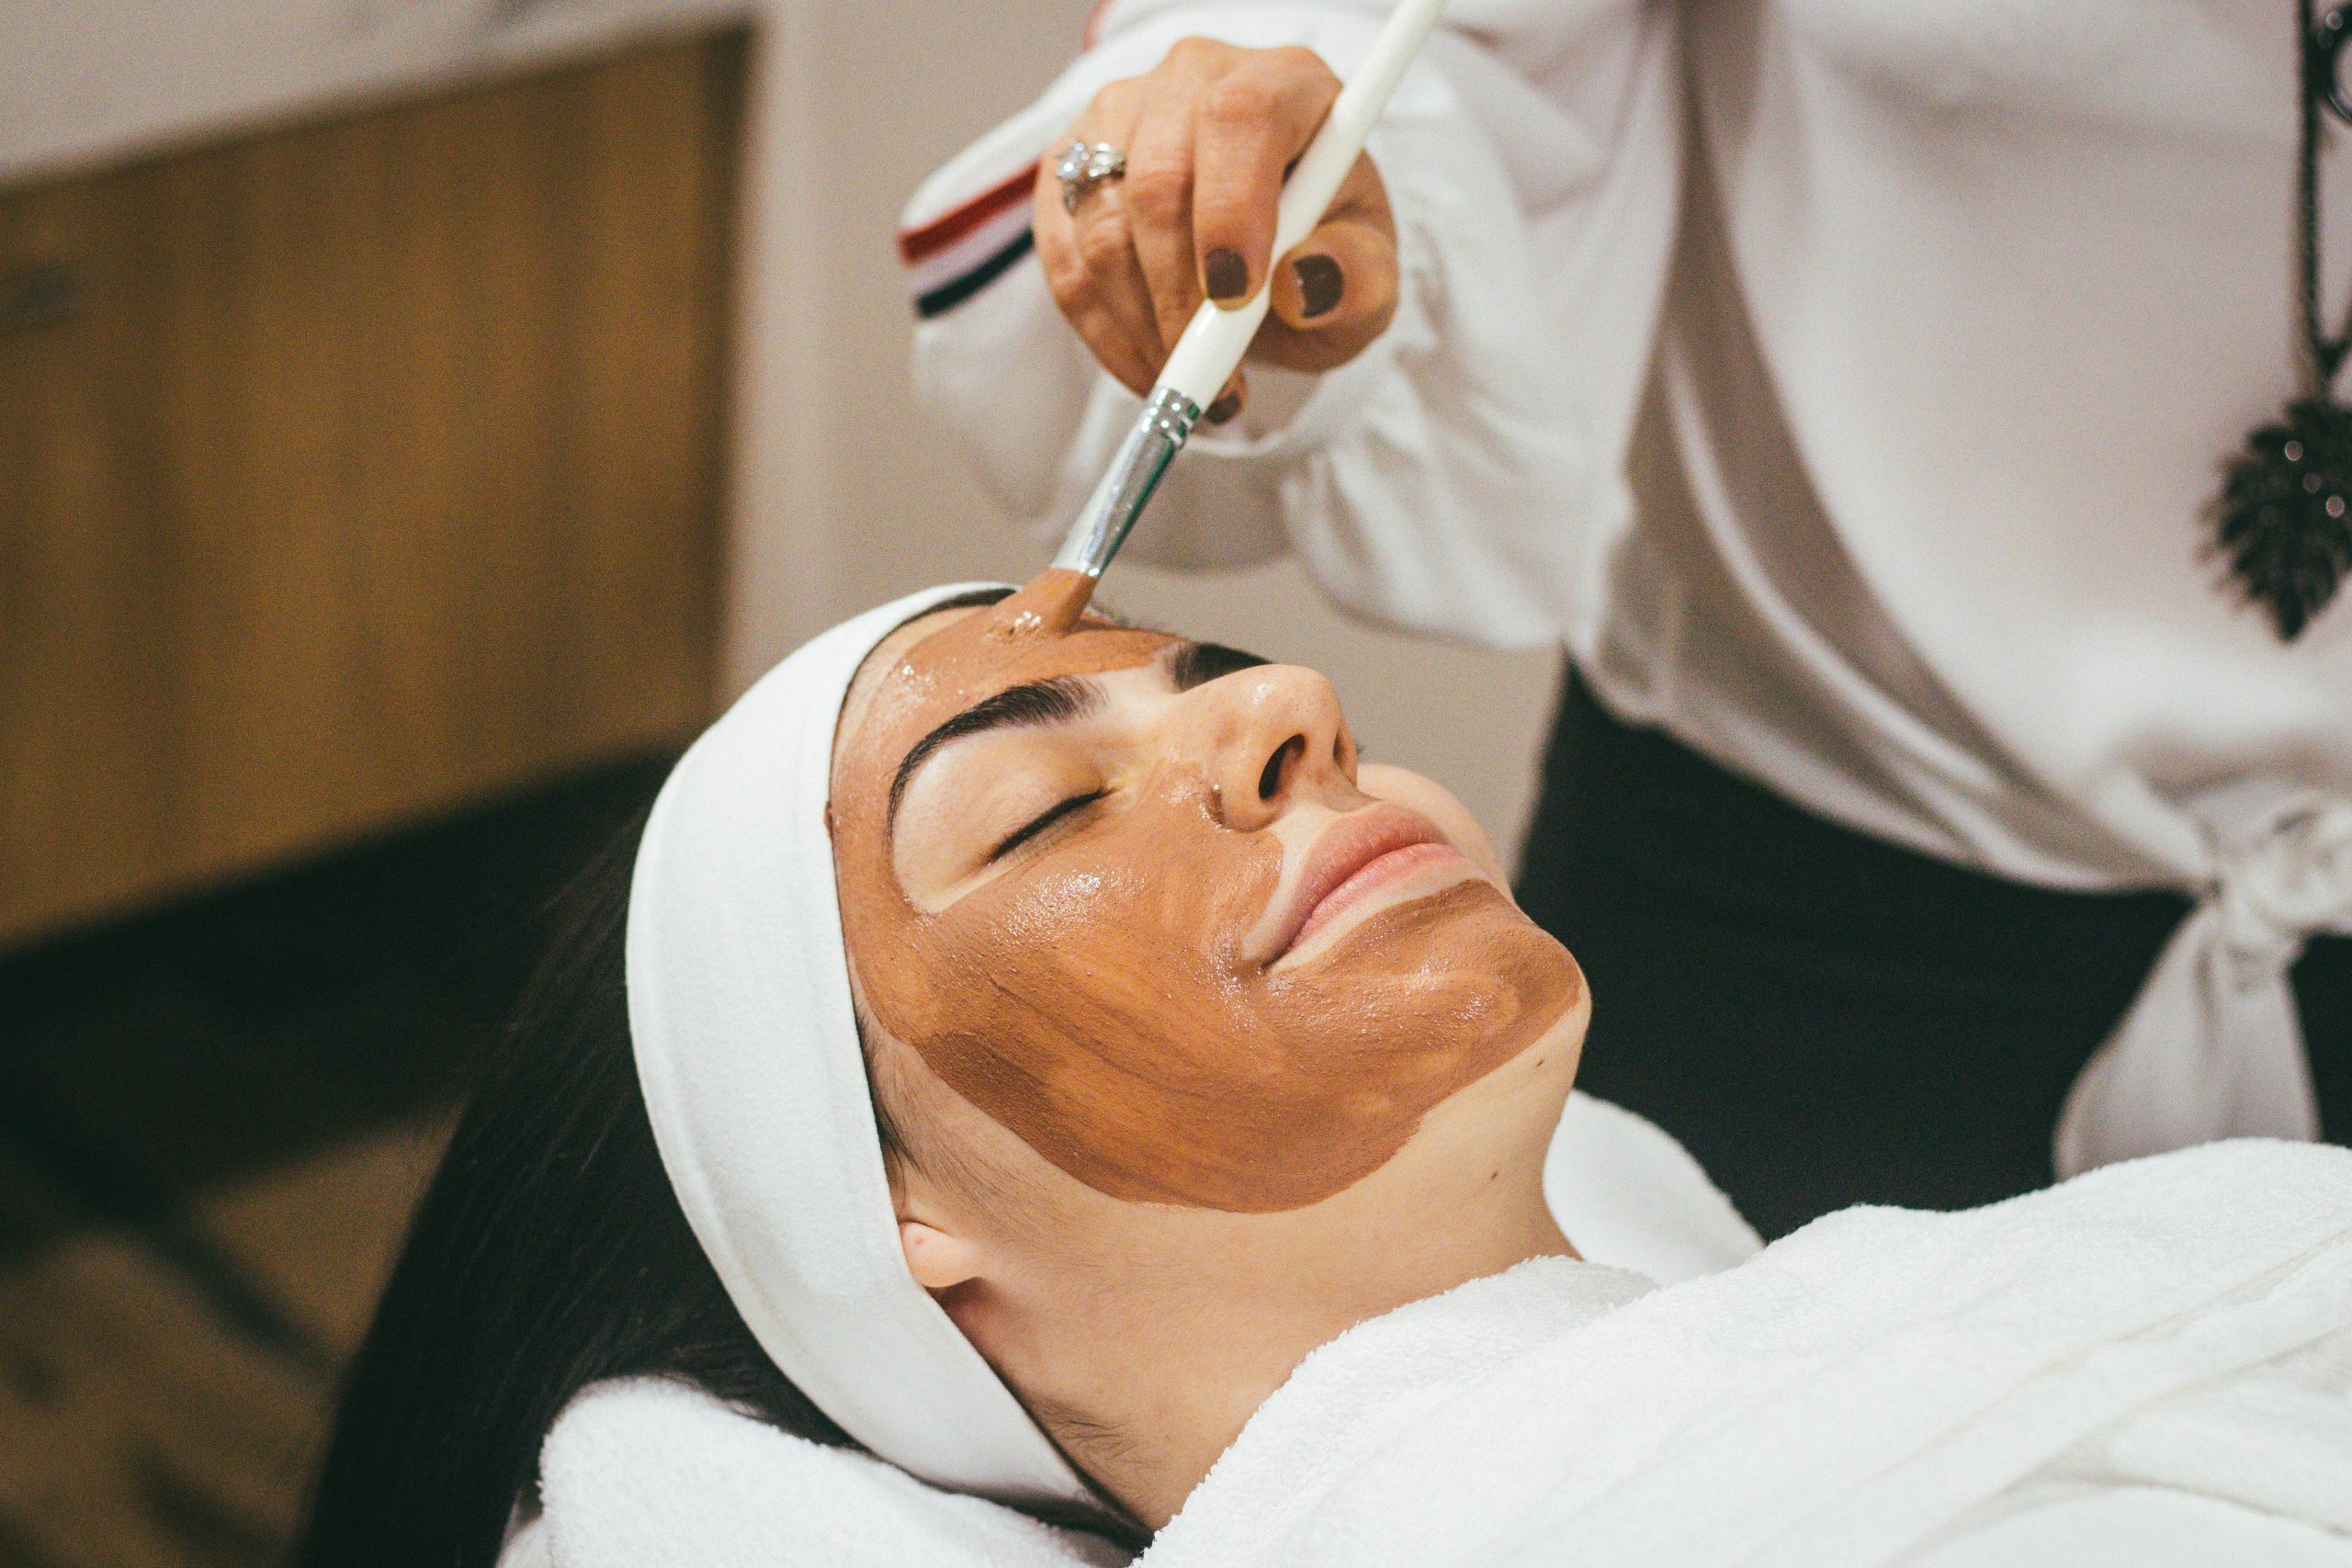 A woman applying face mask on another lady as one of the simple tips to improve your natural beauty